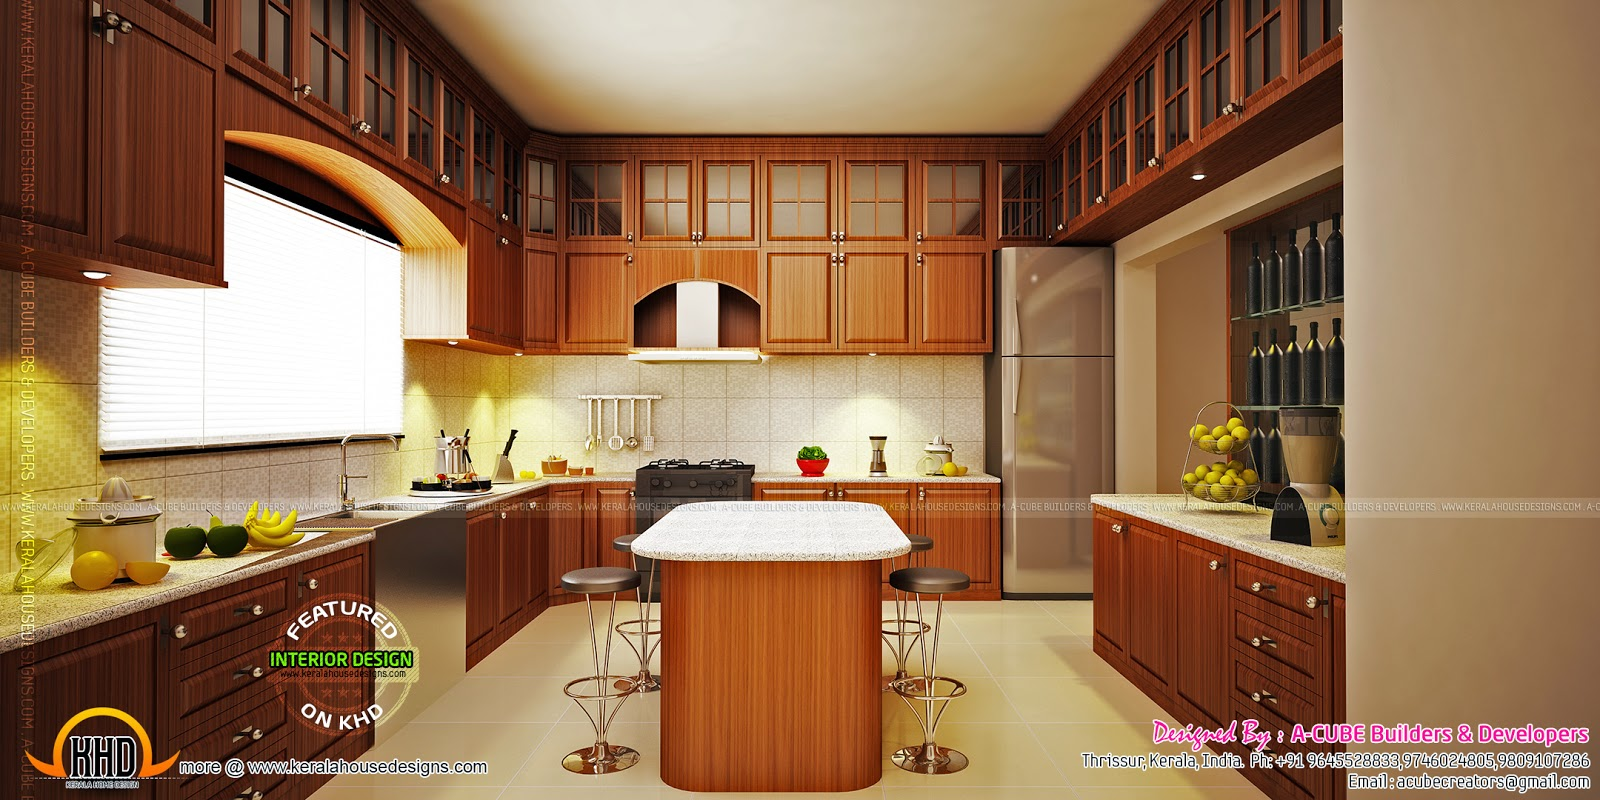 Modern kerala interior designs kerala home design and for Kerala home interior design ideas